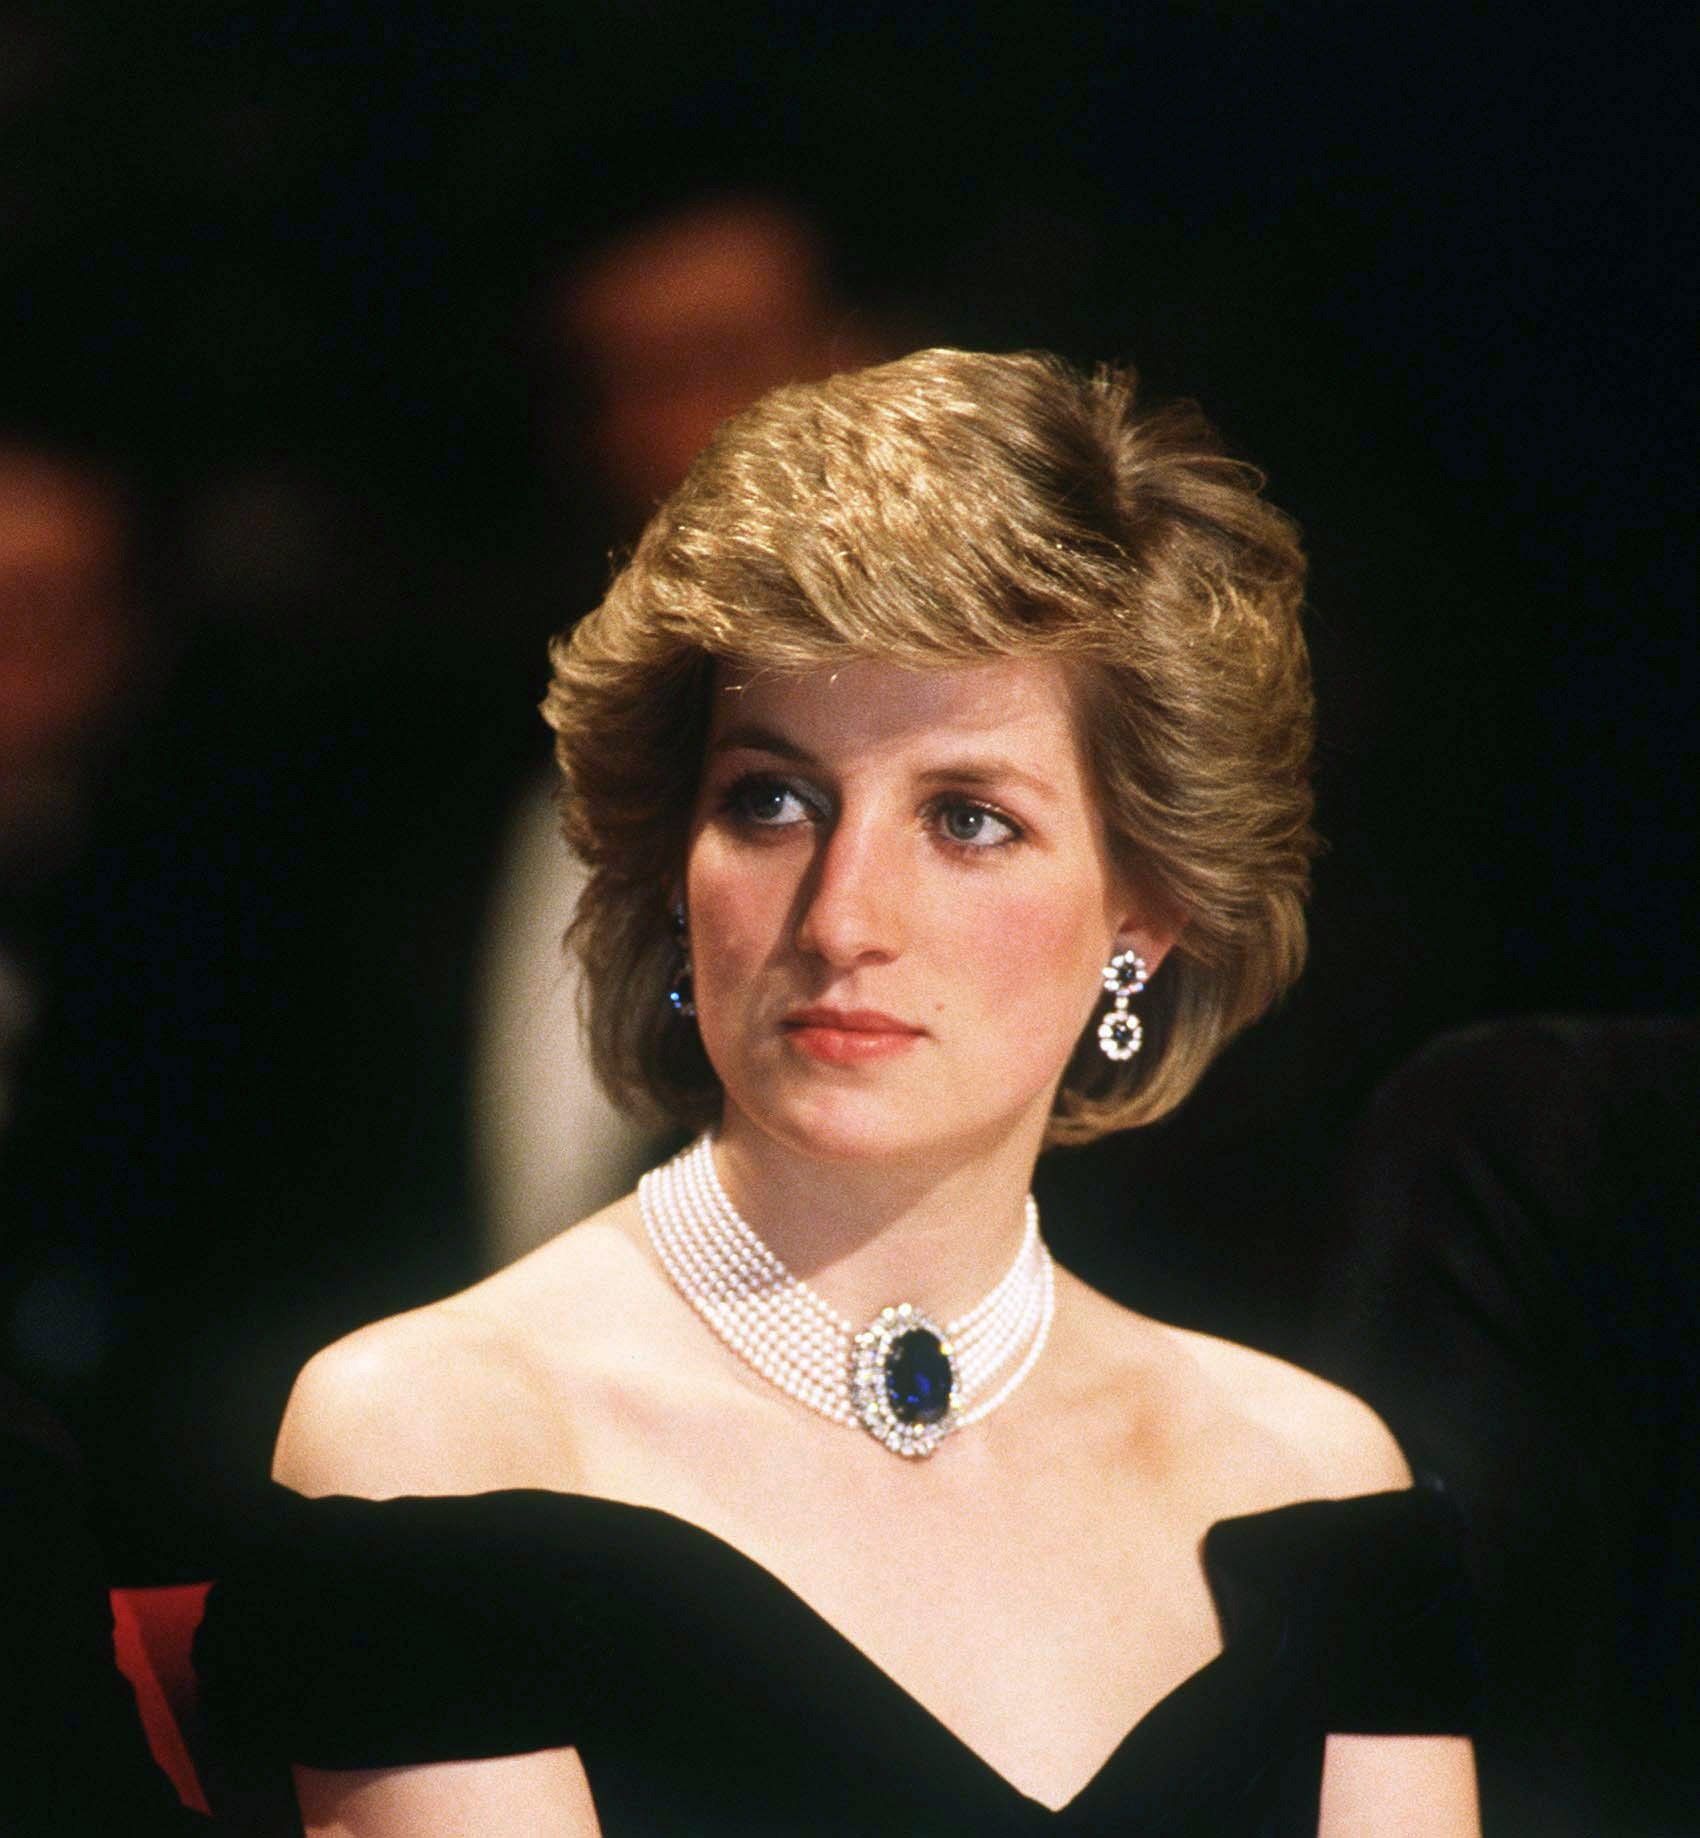 Diana, Princess of Wales, wearing a sapphire diamond and pearl necklace, attends a banquet on April 16, 1986, in Vienna, Austria. | Source: Getty Images.